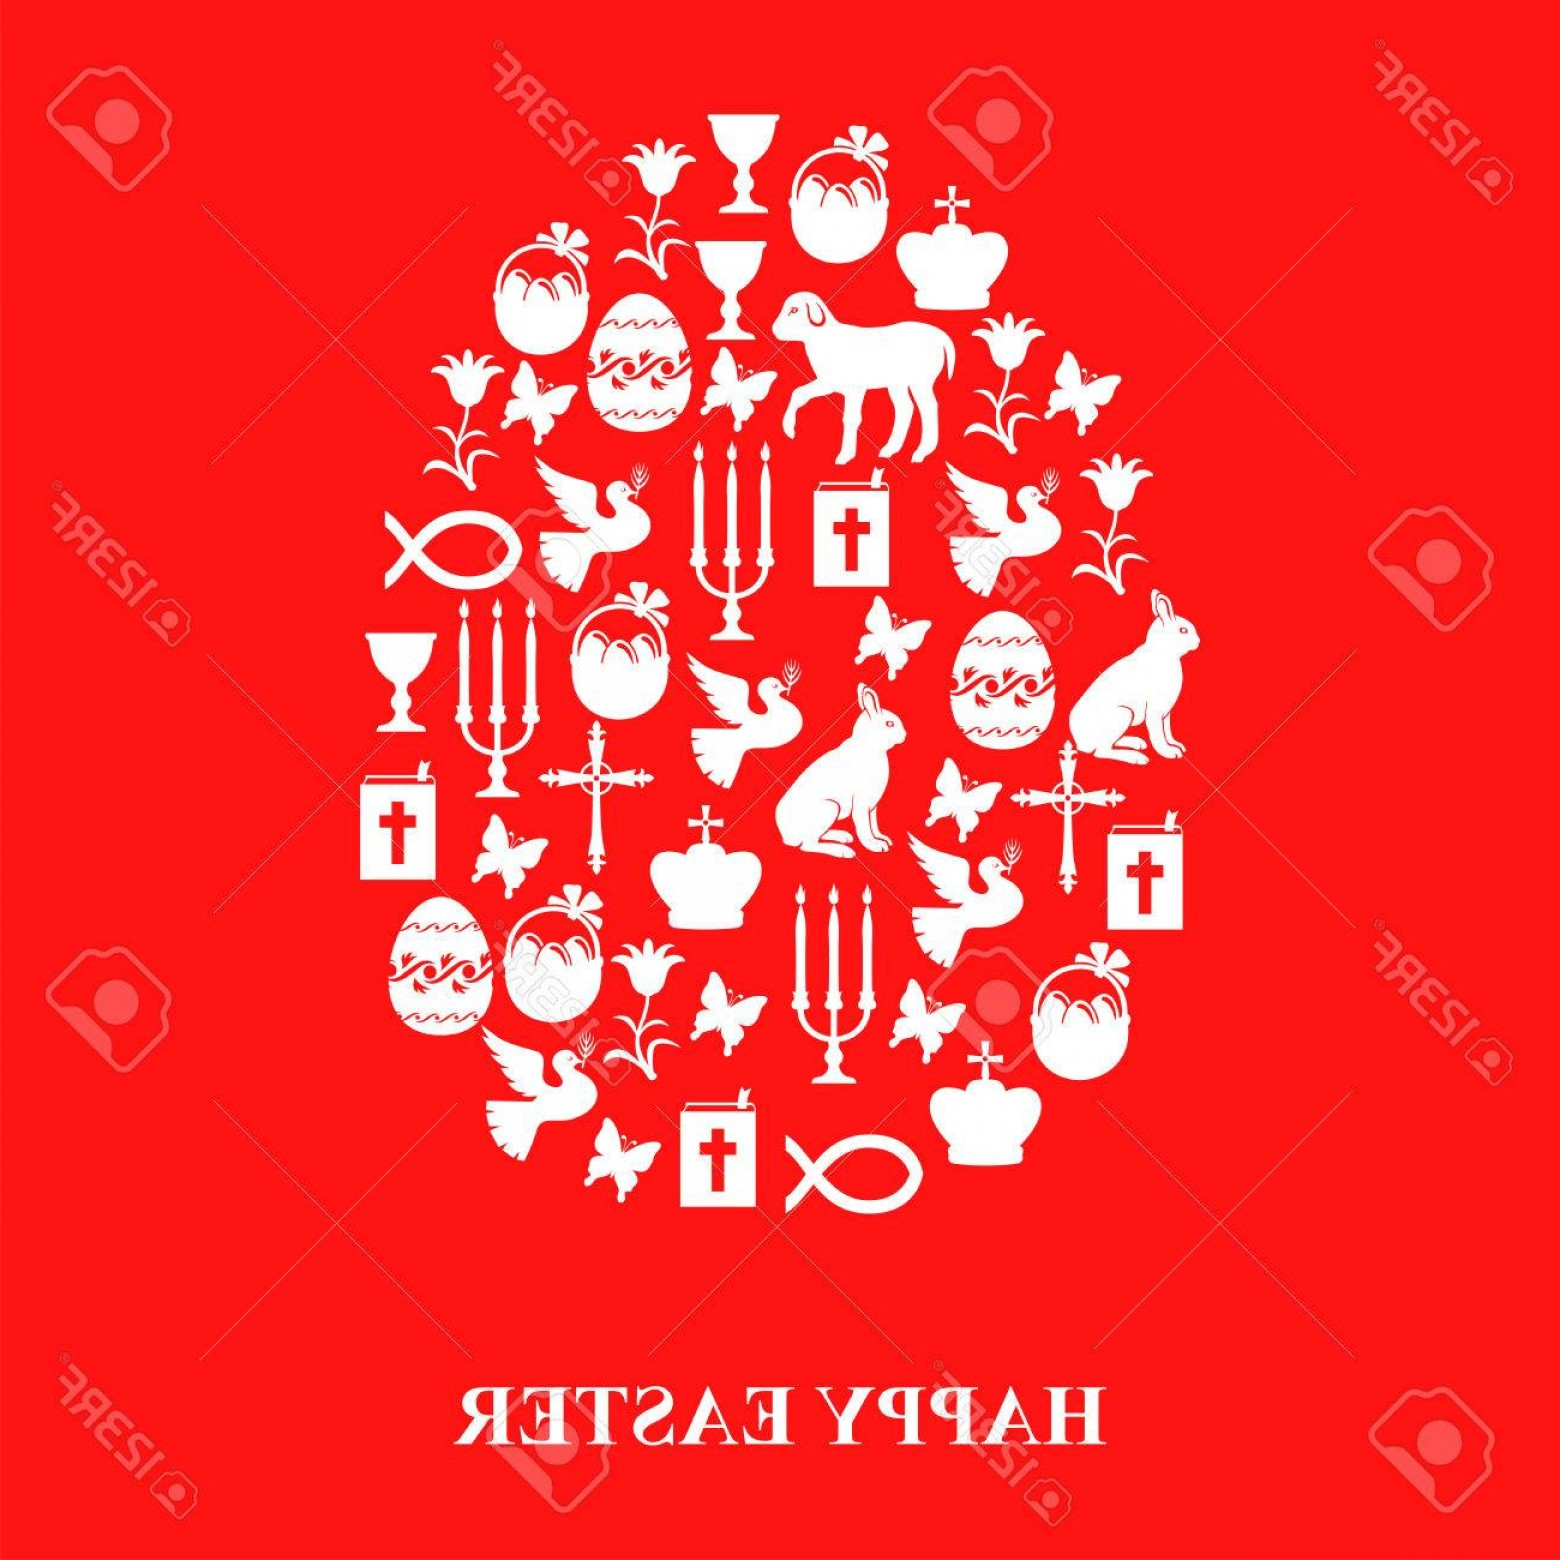 Gospel Music Background Vector: Photostock Vector Vector Illustrations Of Egg Of Easter Symbols Cross Gospel Candles Dove Lamb Hare On Red Background